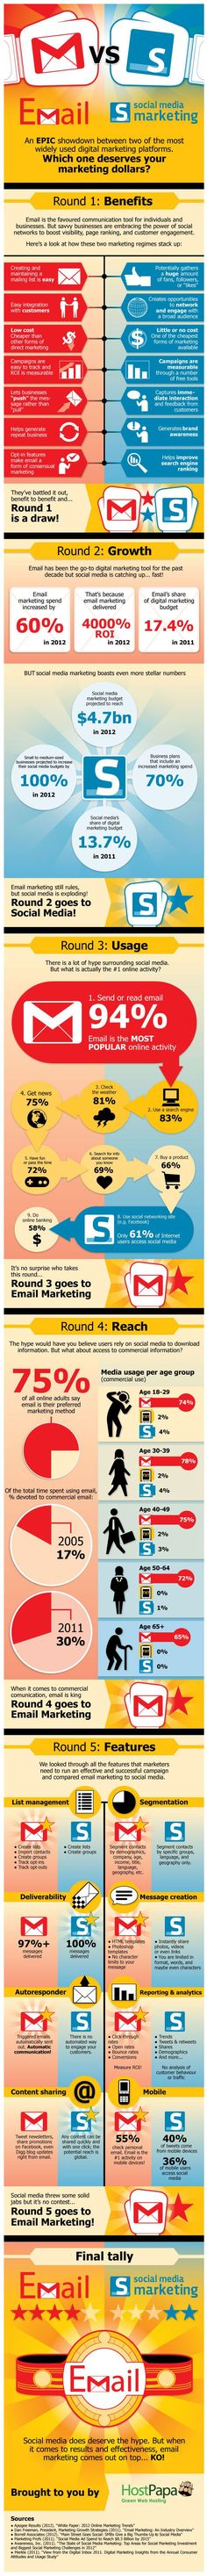 Email Marketing Outperforms Social Media in Terms of Reach and Features